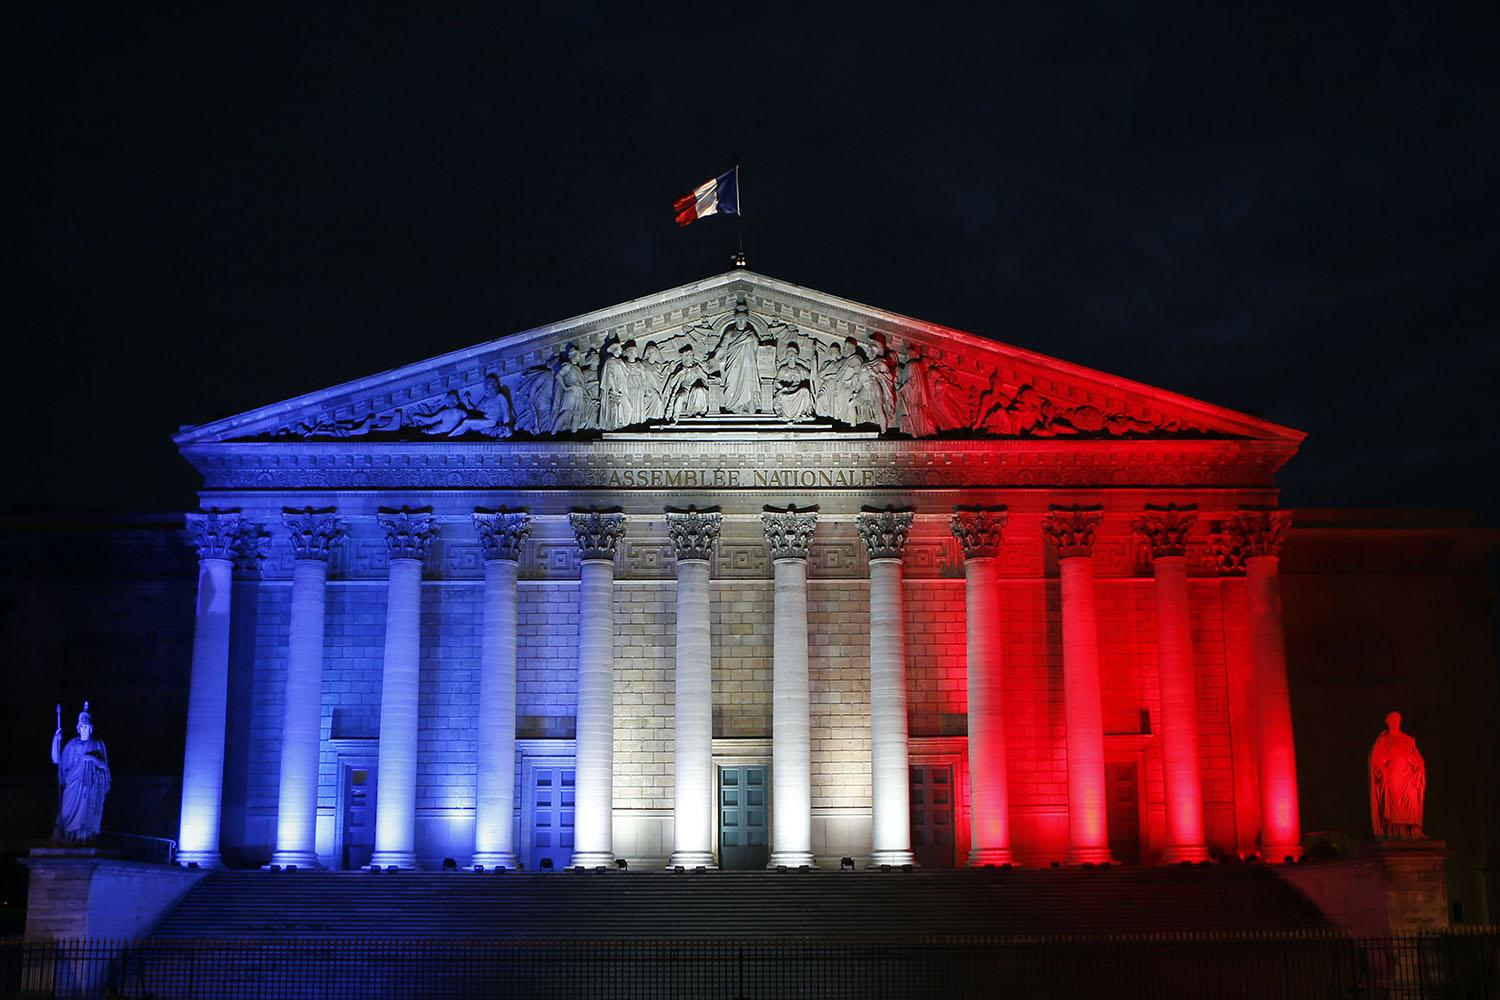 The French Assemblee Nationale which houses the bicameral Parliament is lit in the French National flag colors, in Paris, France, Sunday, Nov. 22, 2015 one week after the Paris attacks. Several TCU students and faculty are studying abroad in France, all of whom are accounted for and safe. (AP Photo/Francois Mori)